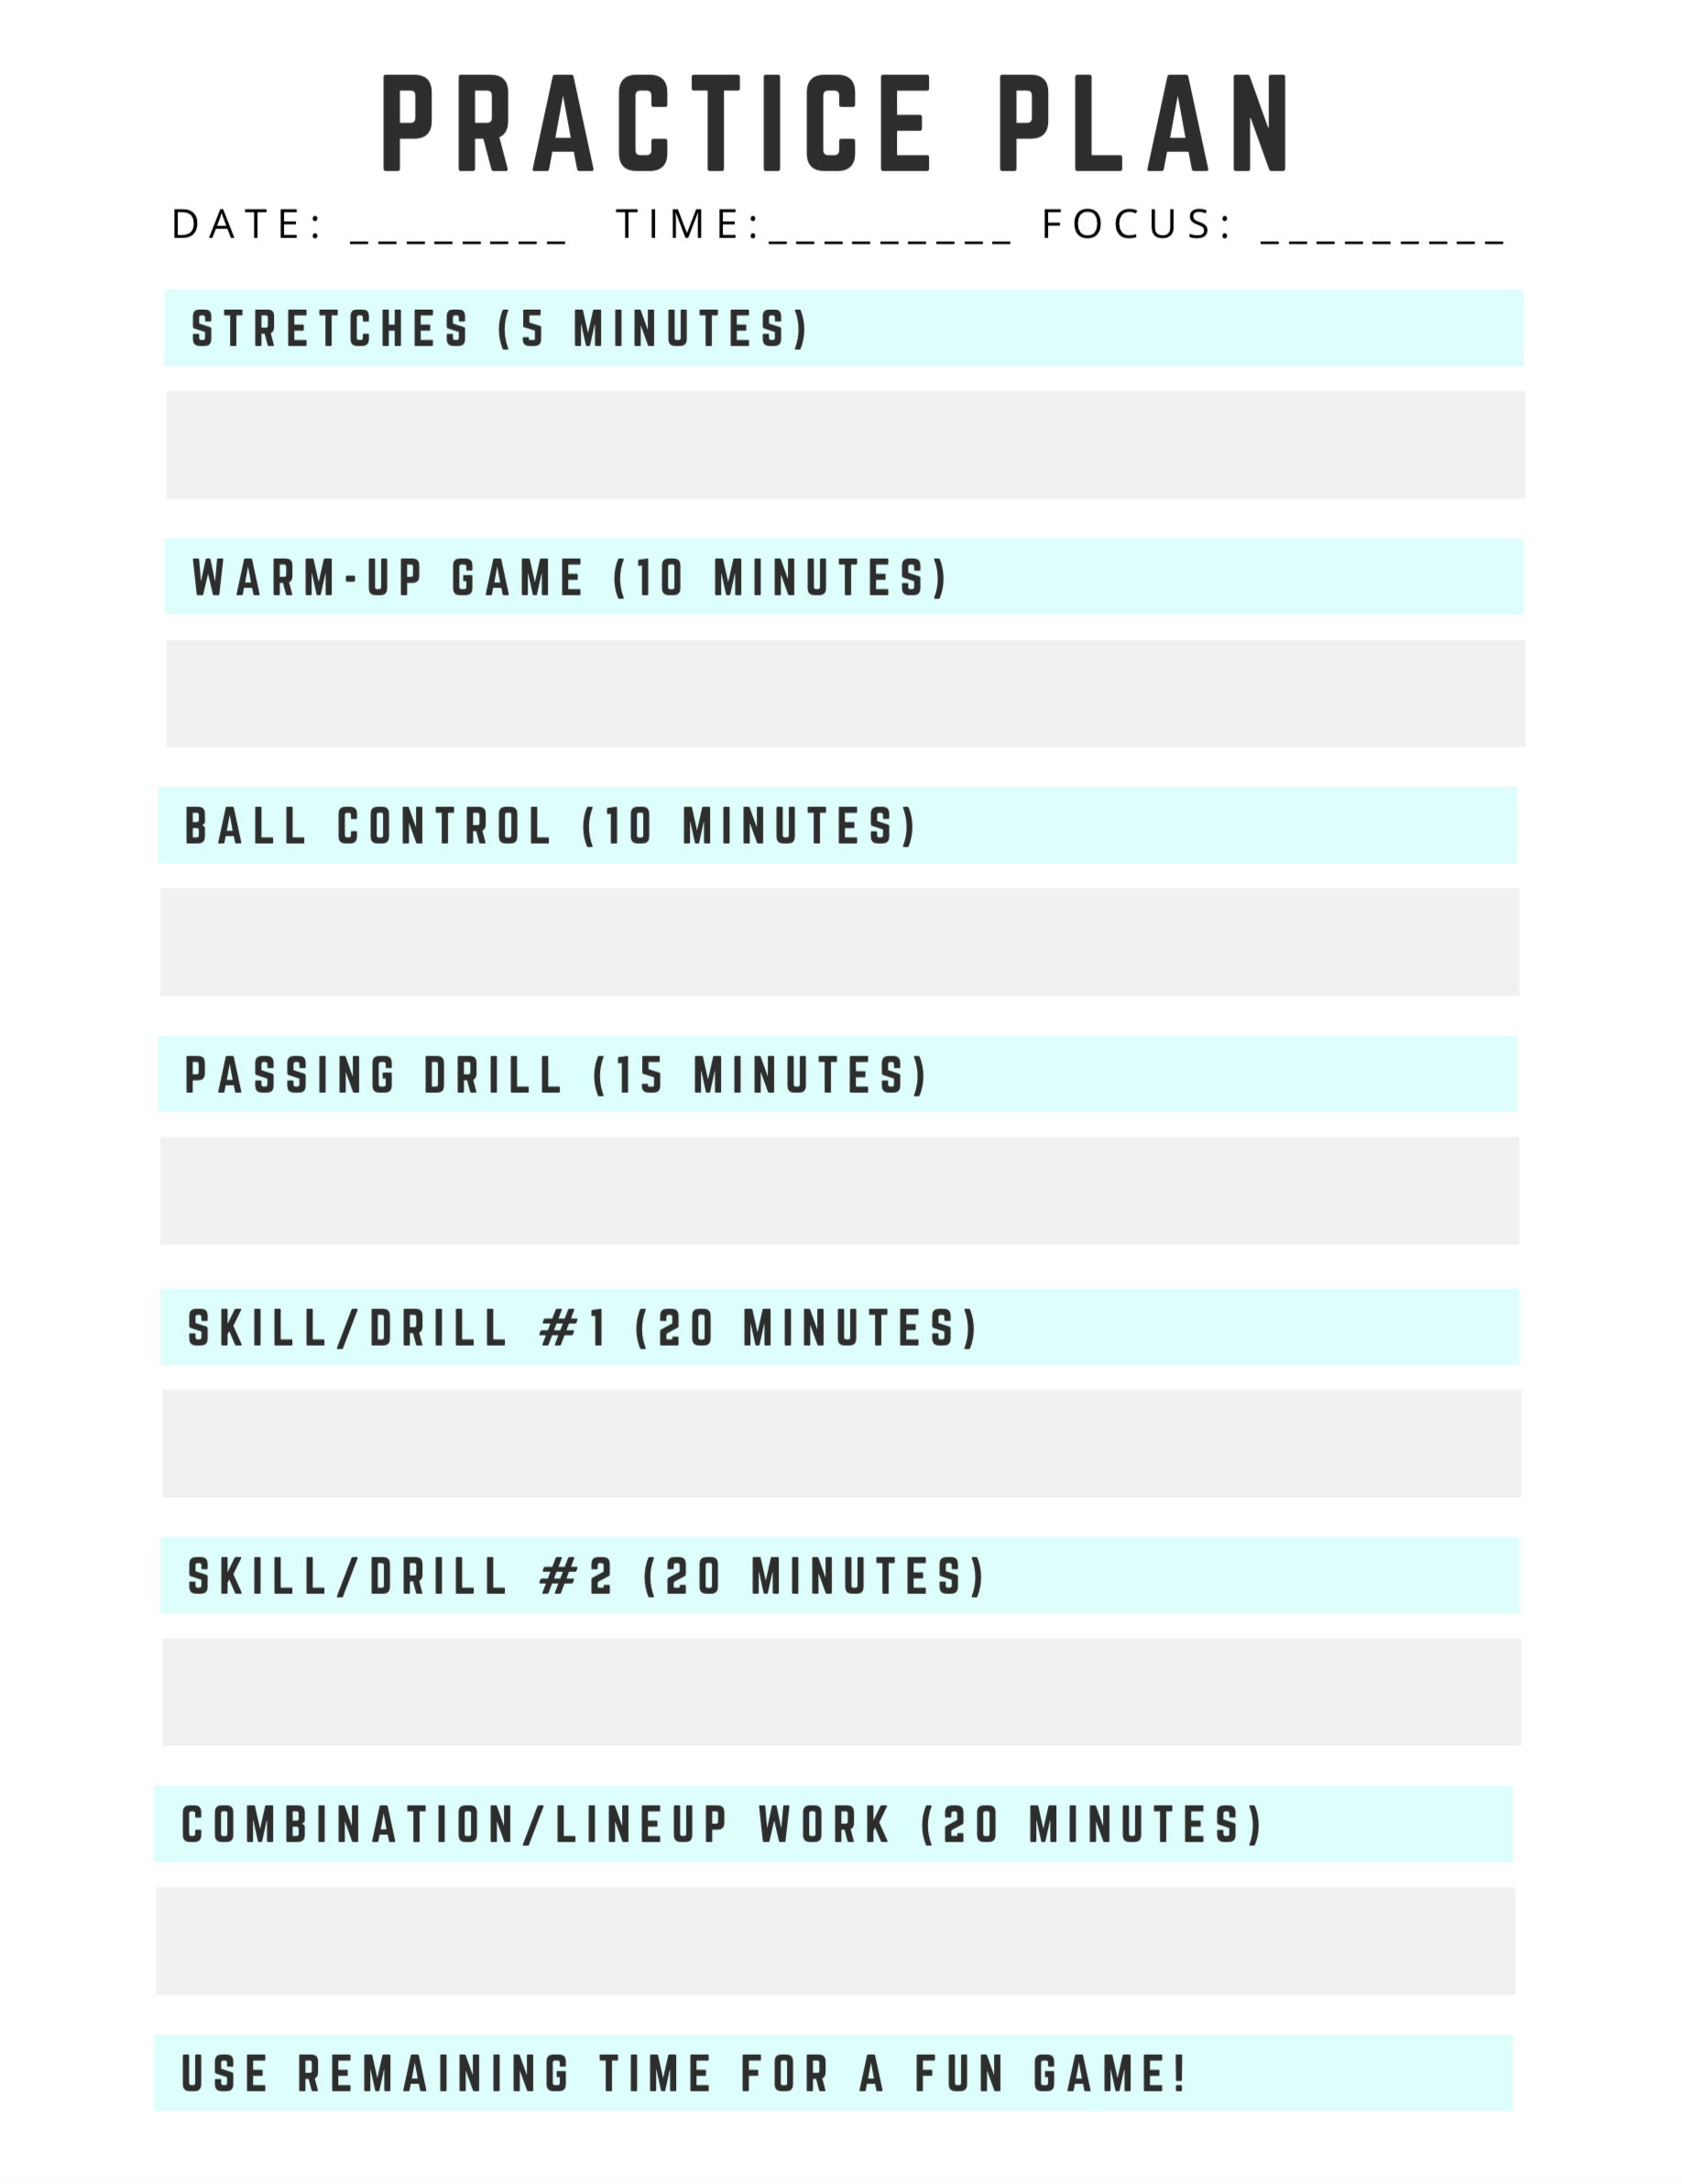 2 Hour Volleyball Practice Plan Template - Download and print this blank practice plan template to use with your volleyball team!